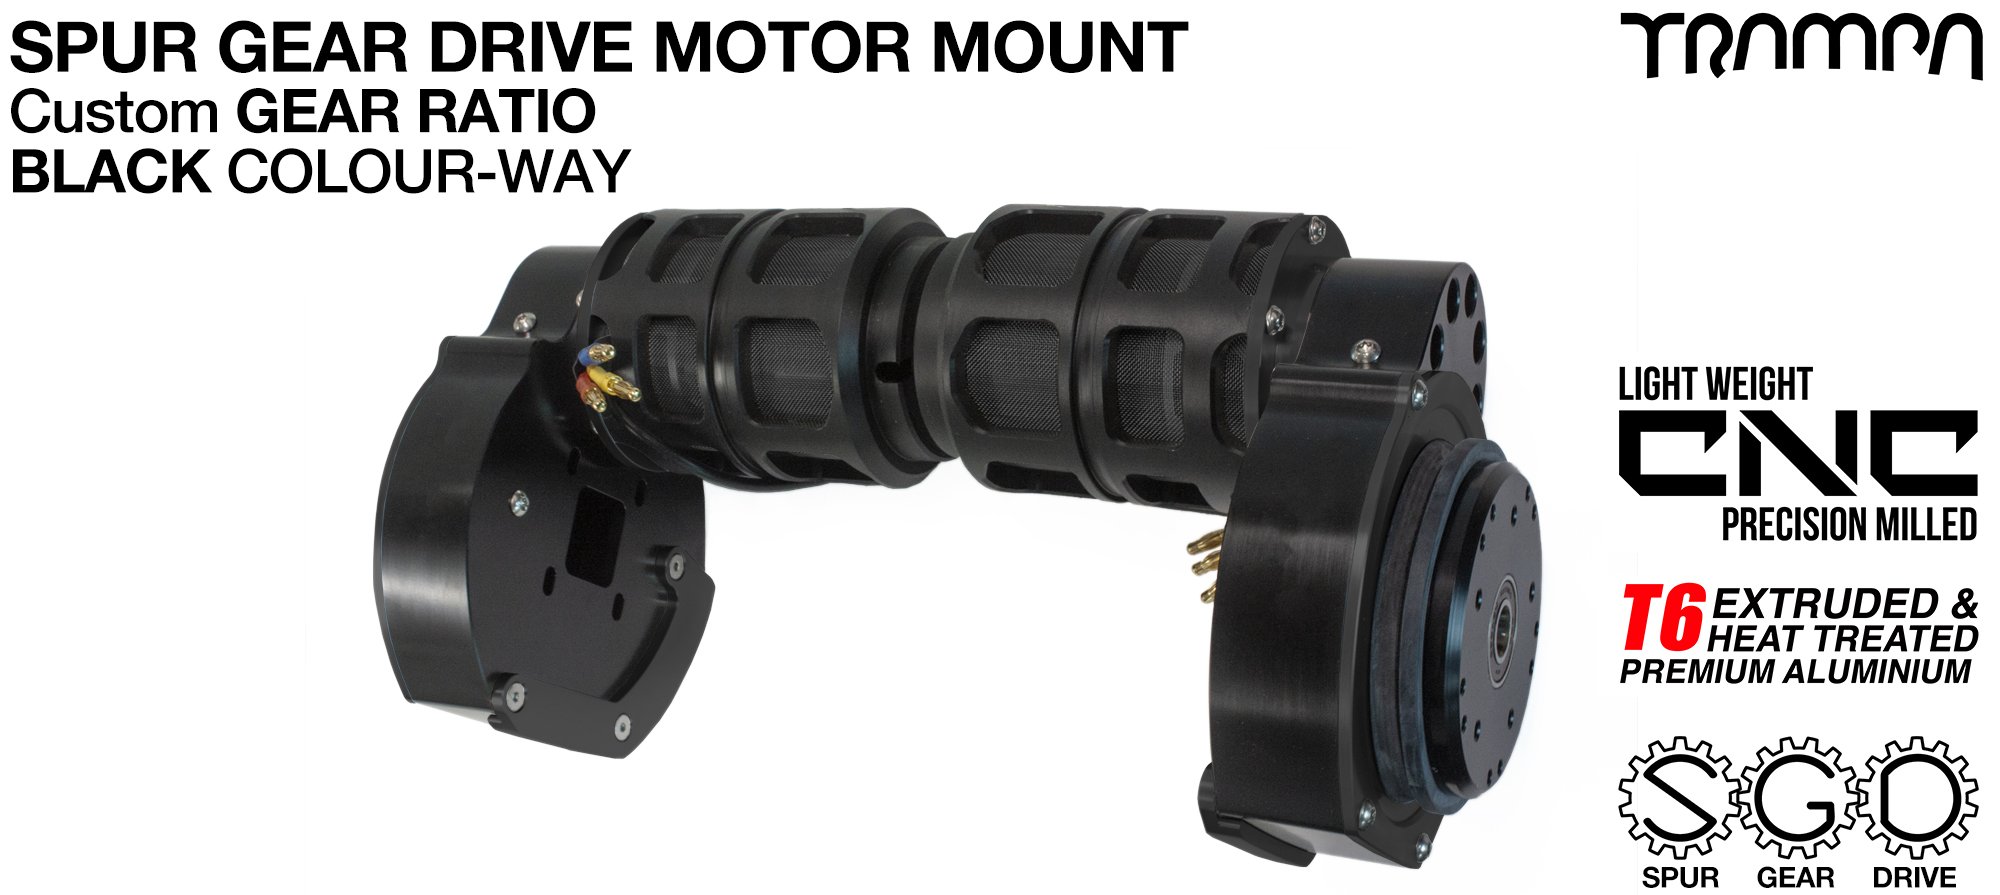 Mountainboard Spur Gear Drive TWIN Motor Mount - BLACK